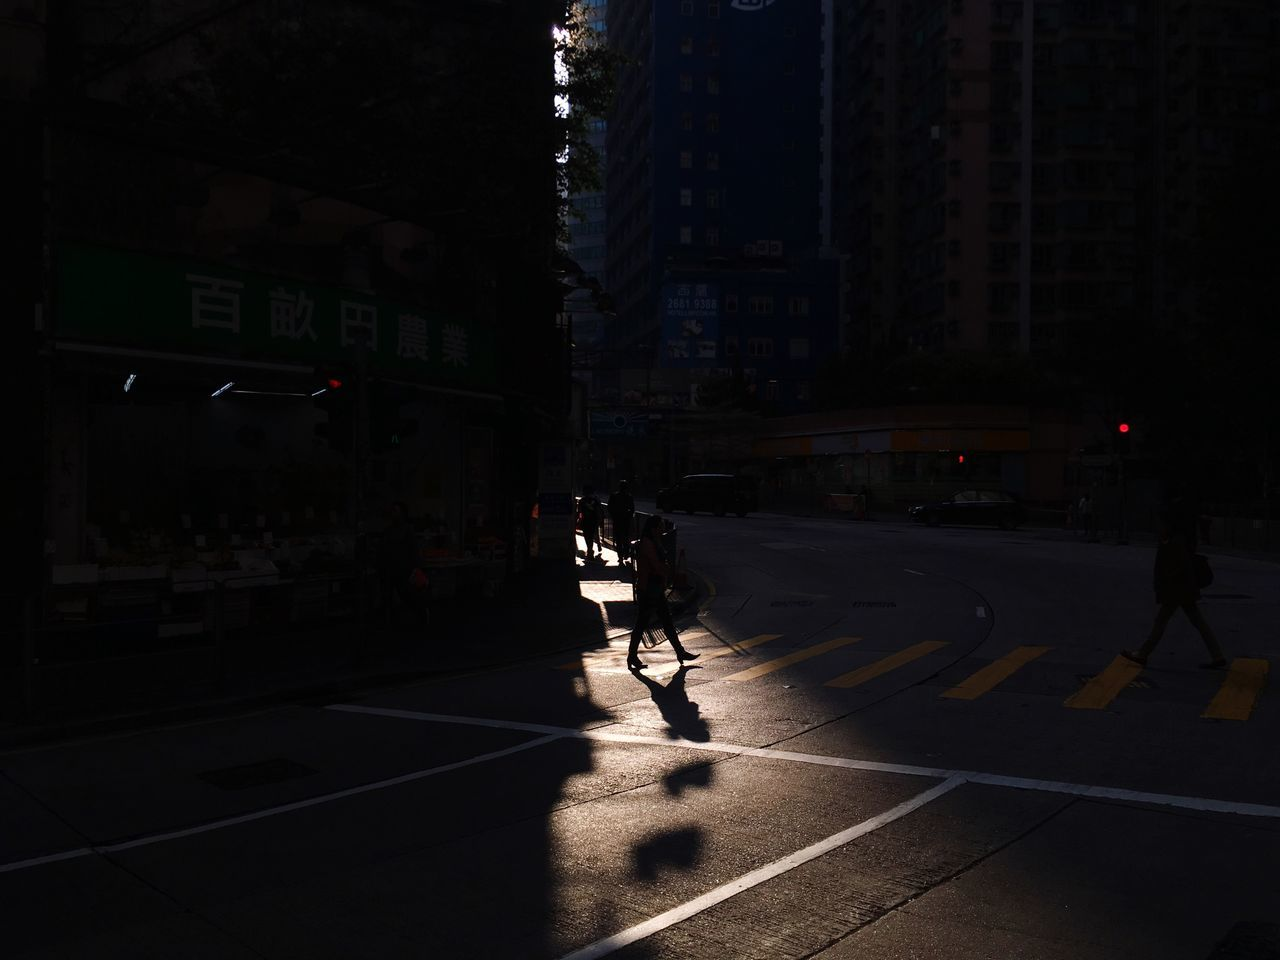 Street Full Length Night Real People Transportation Built Structure Rear View Architecture City Illuminated One Person Land Vehicle Building Exterior Outdoors Men Silhouette Shadows The City Light